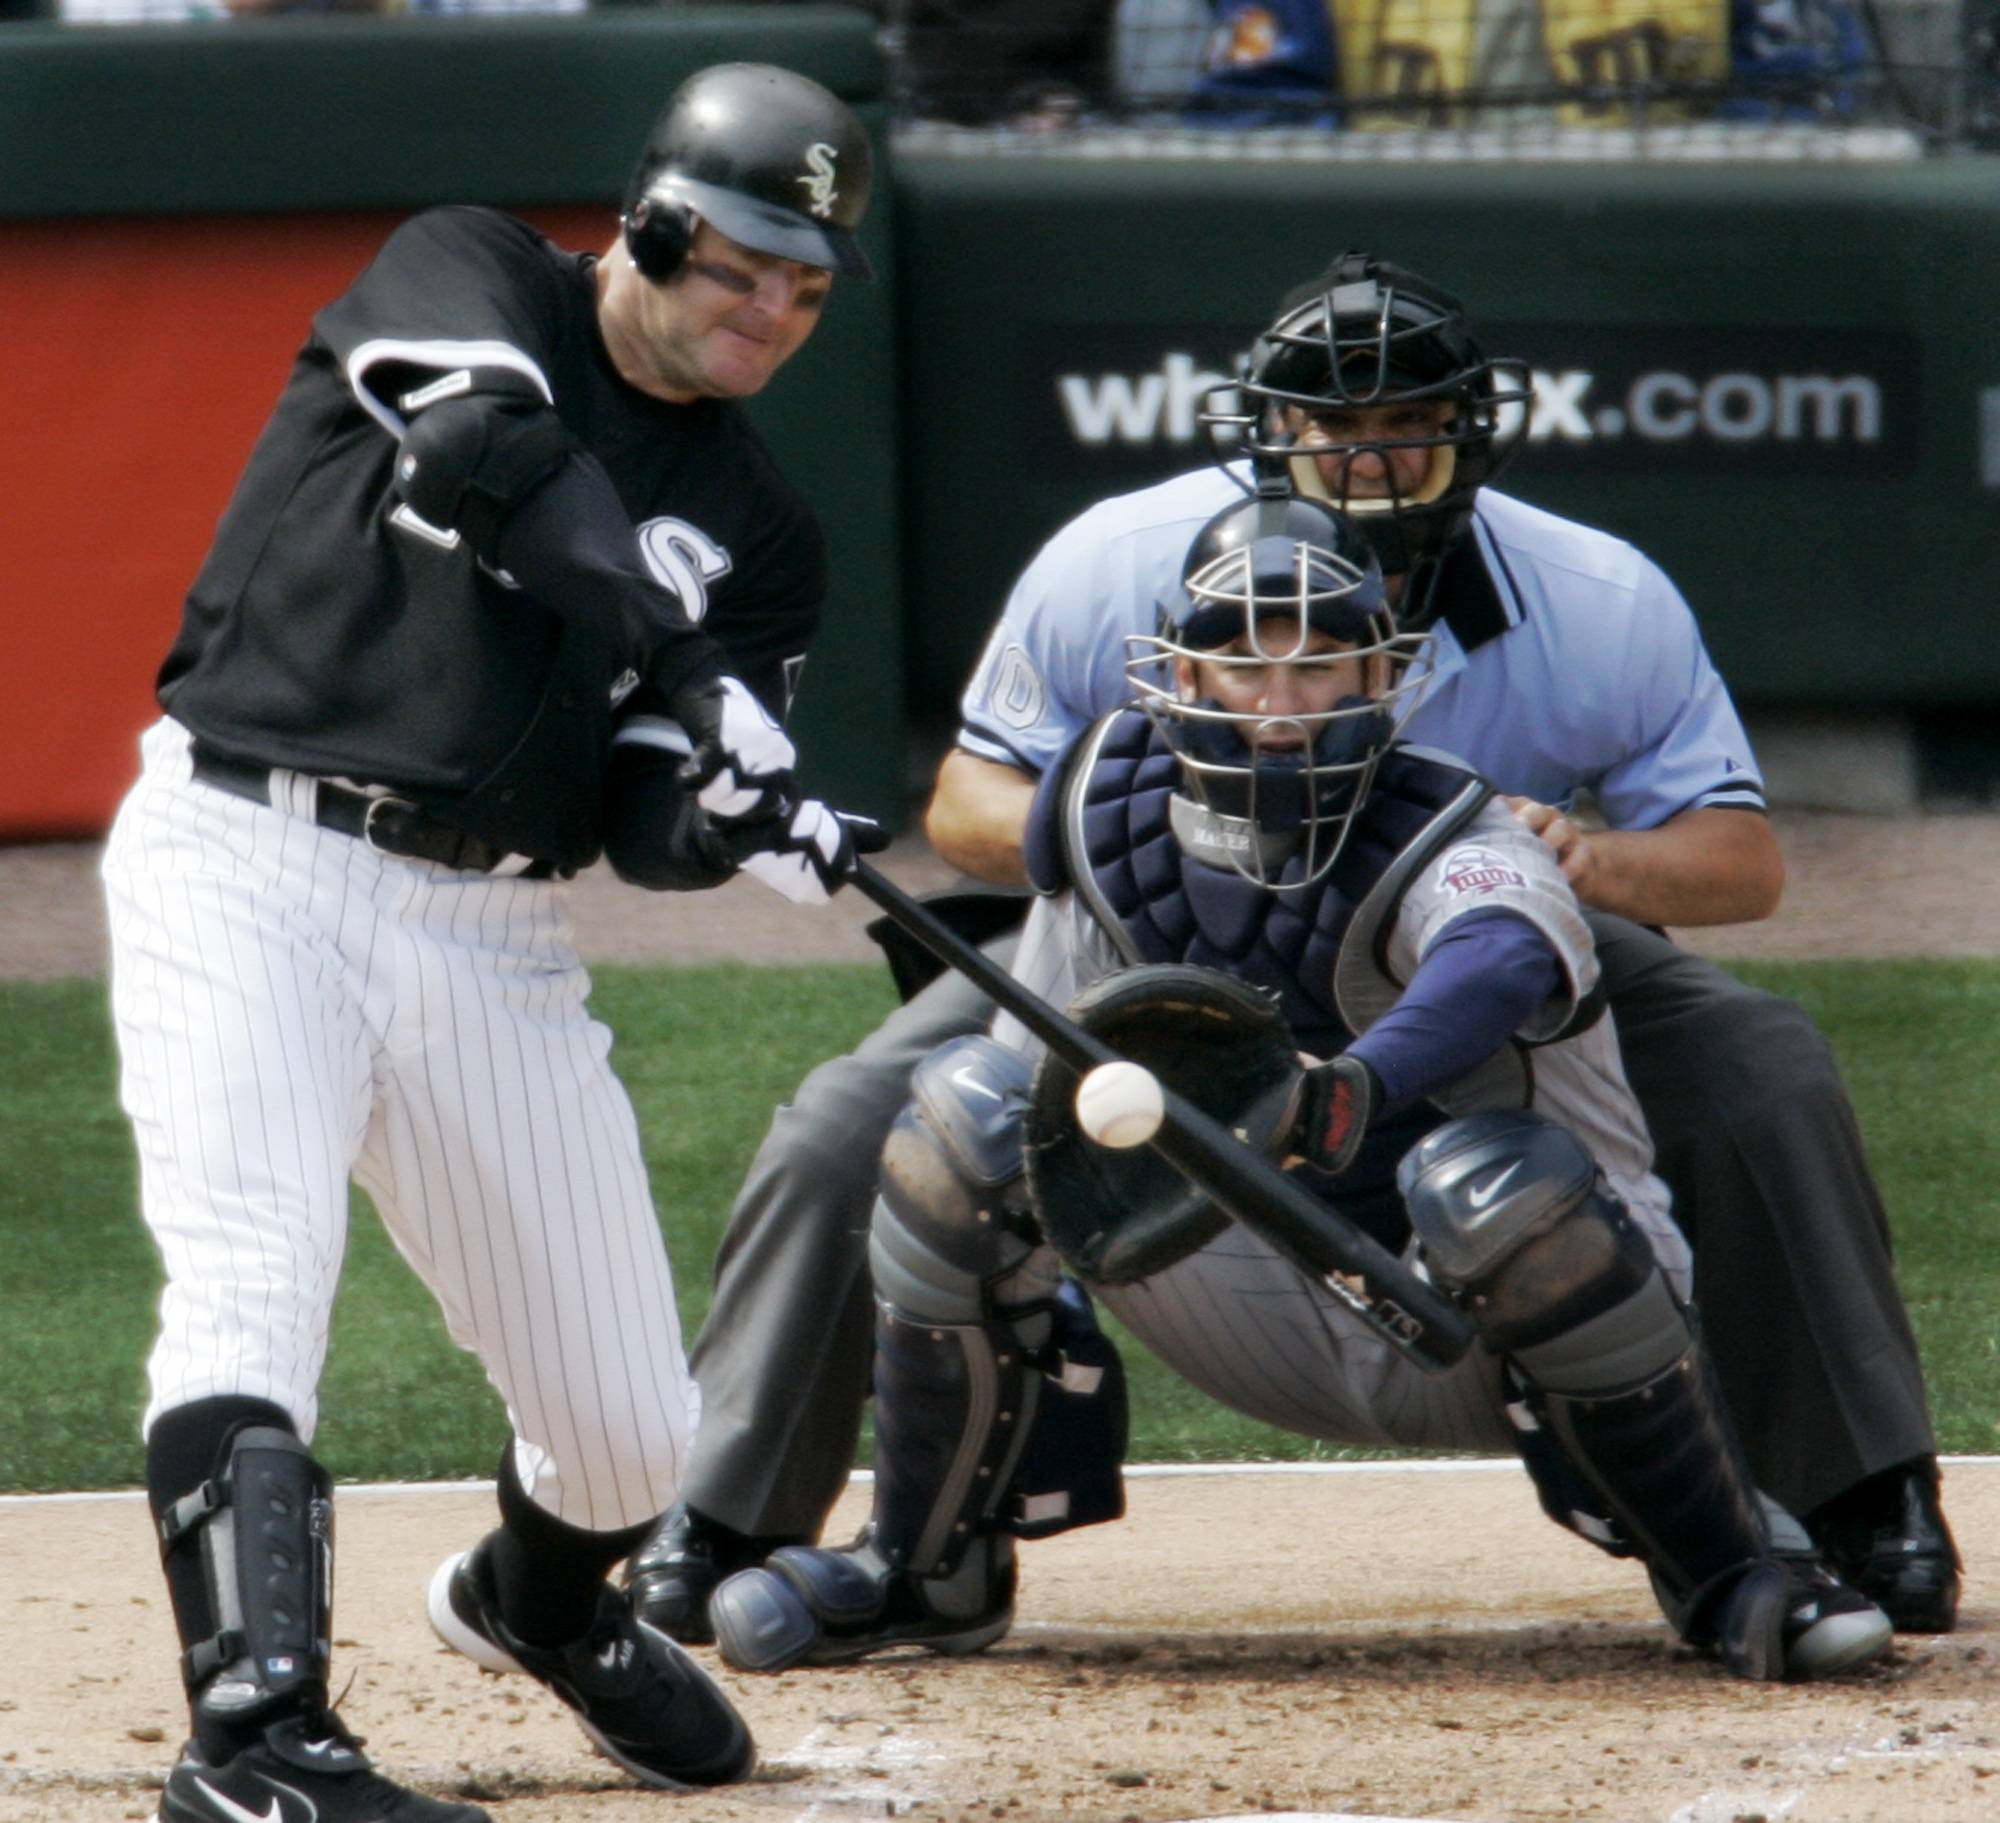 Former Chicago White Sox designated hitter Jim Thome will coach and visit with campers at two White Sox Silver Slugger baseball camps offered this summer in Lisle and Glen Ellyn.